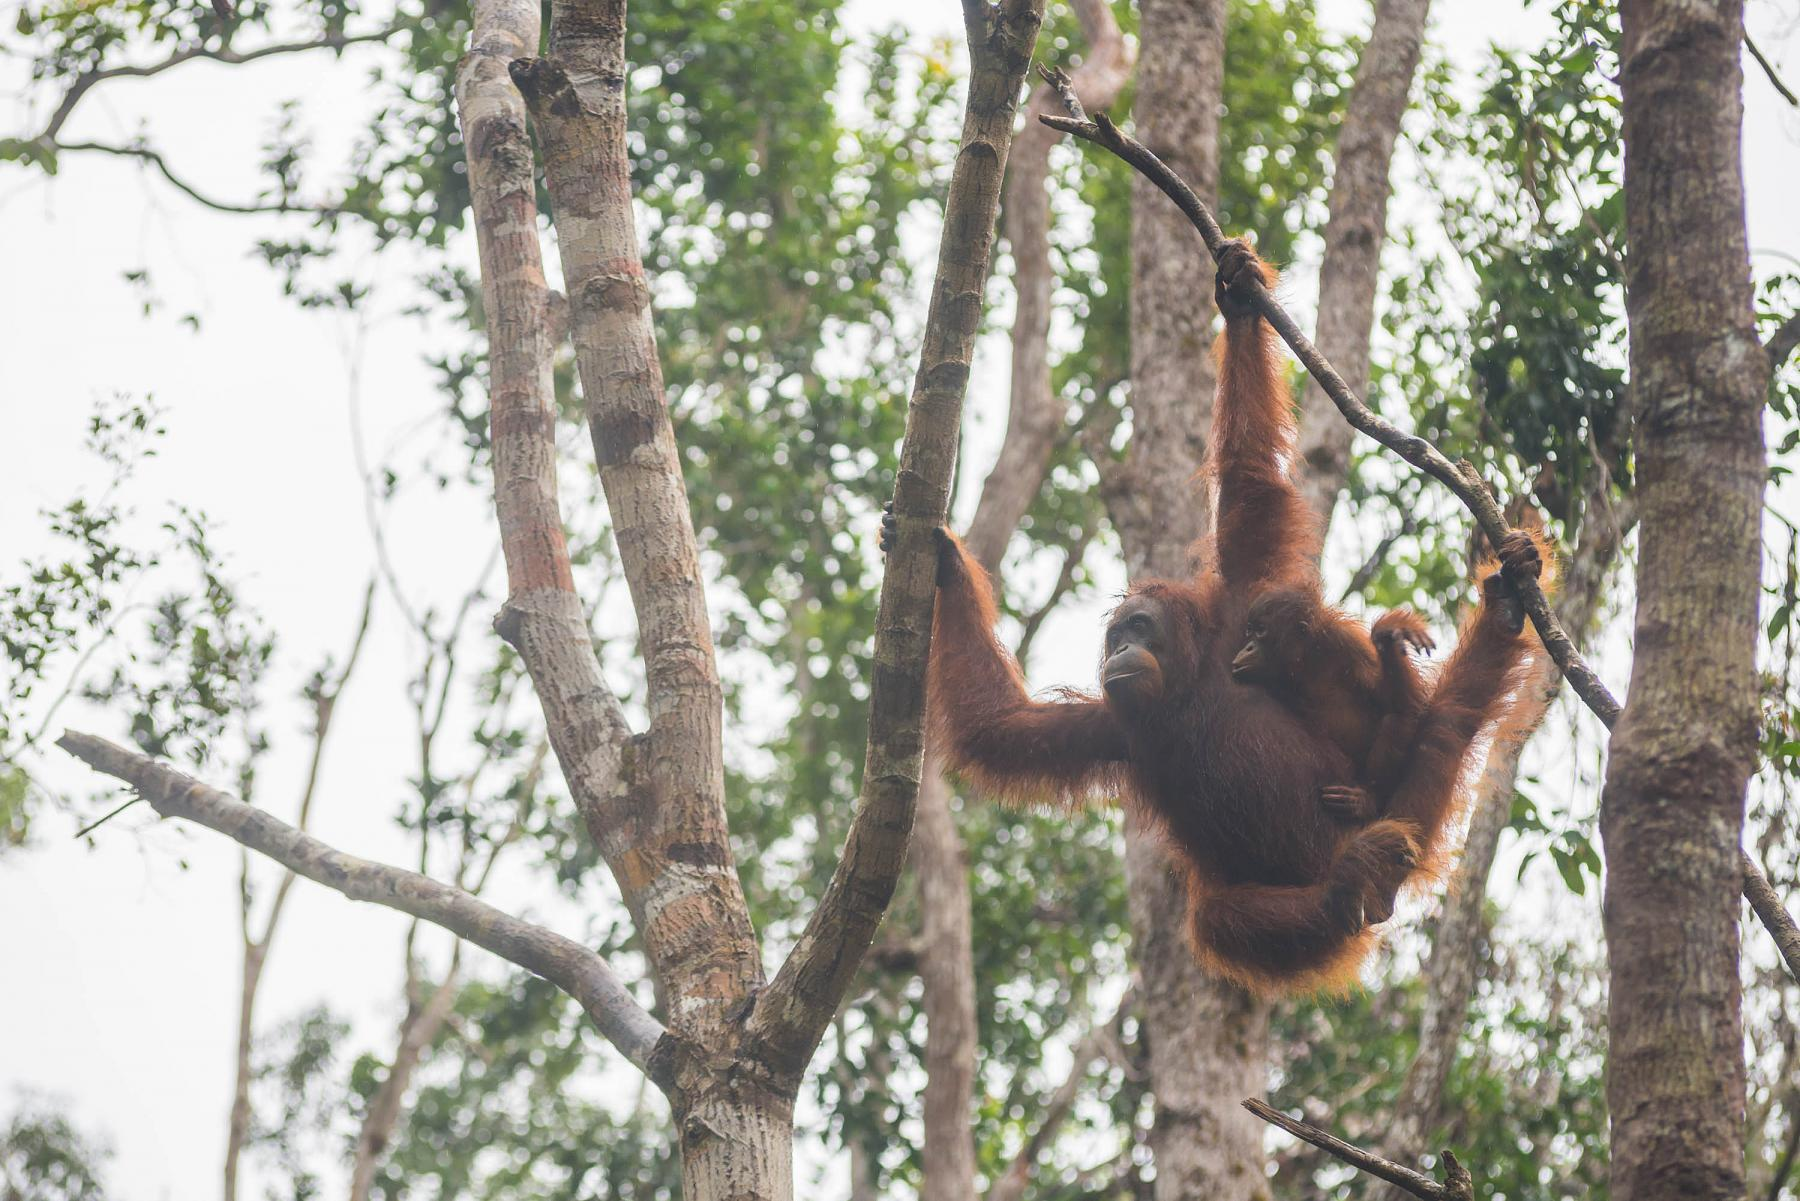 Orangutan River Safari - Photo Sharing (Free Event) starting at High Street, Funan Showsuite, Singapore